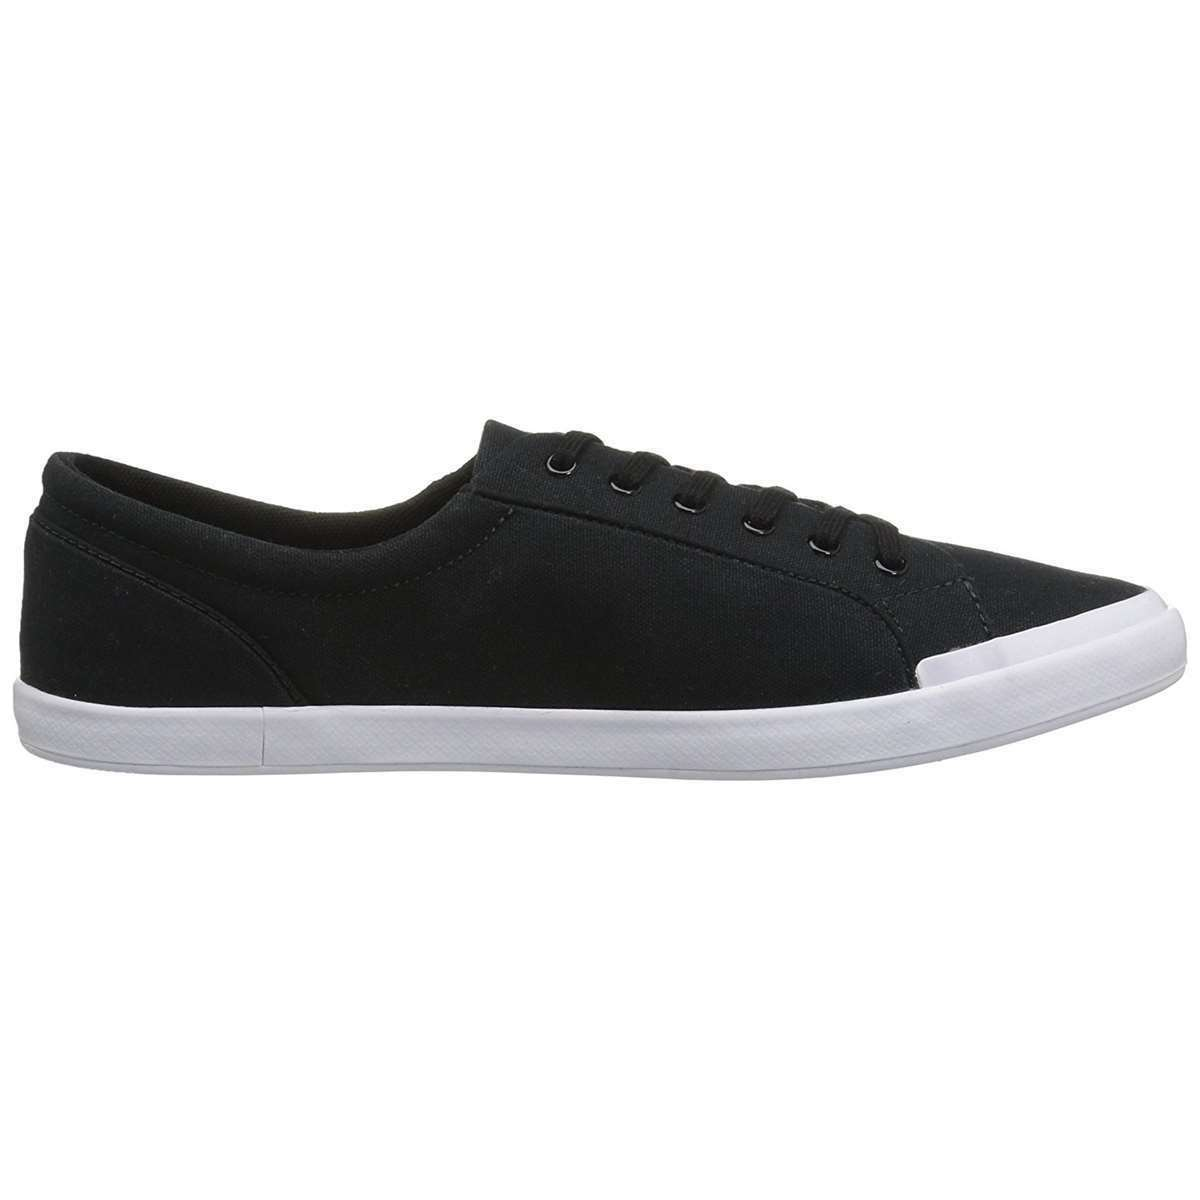 Lacoste Womens Fashion Sneakers Lancelle Lancelle Lancelle Lace 6 Eye NEW Casual shoes 5352b5